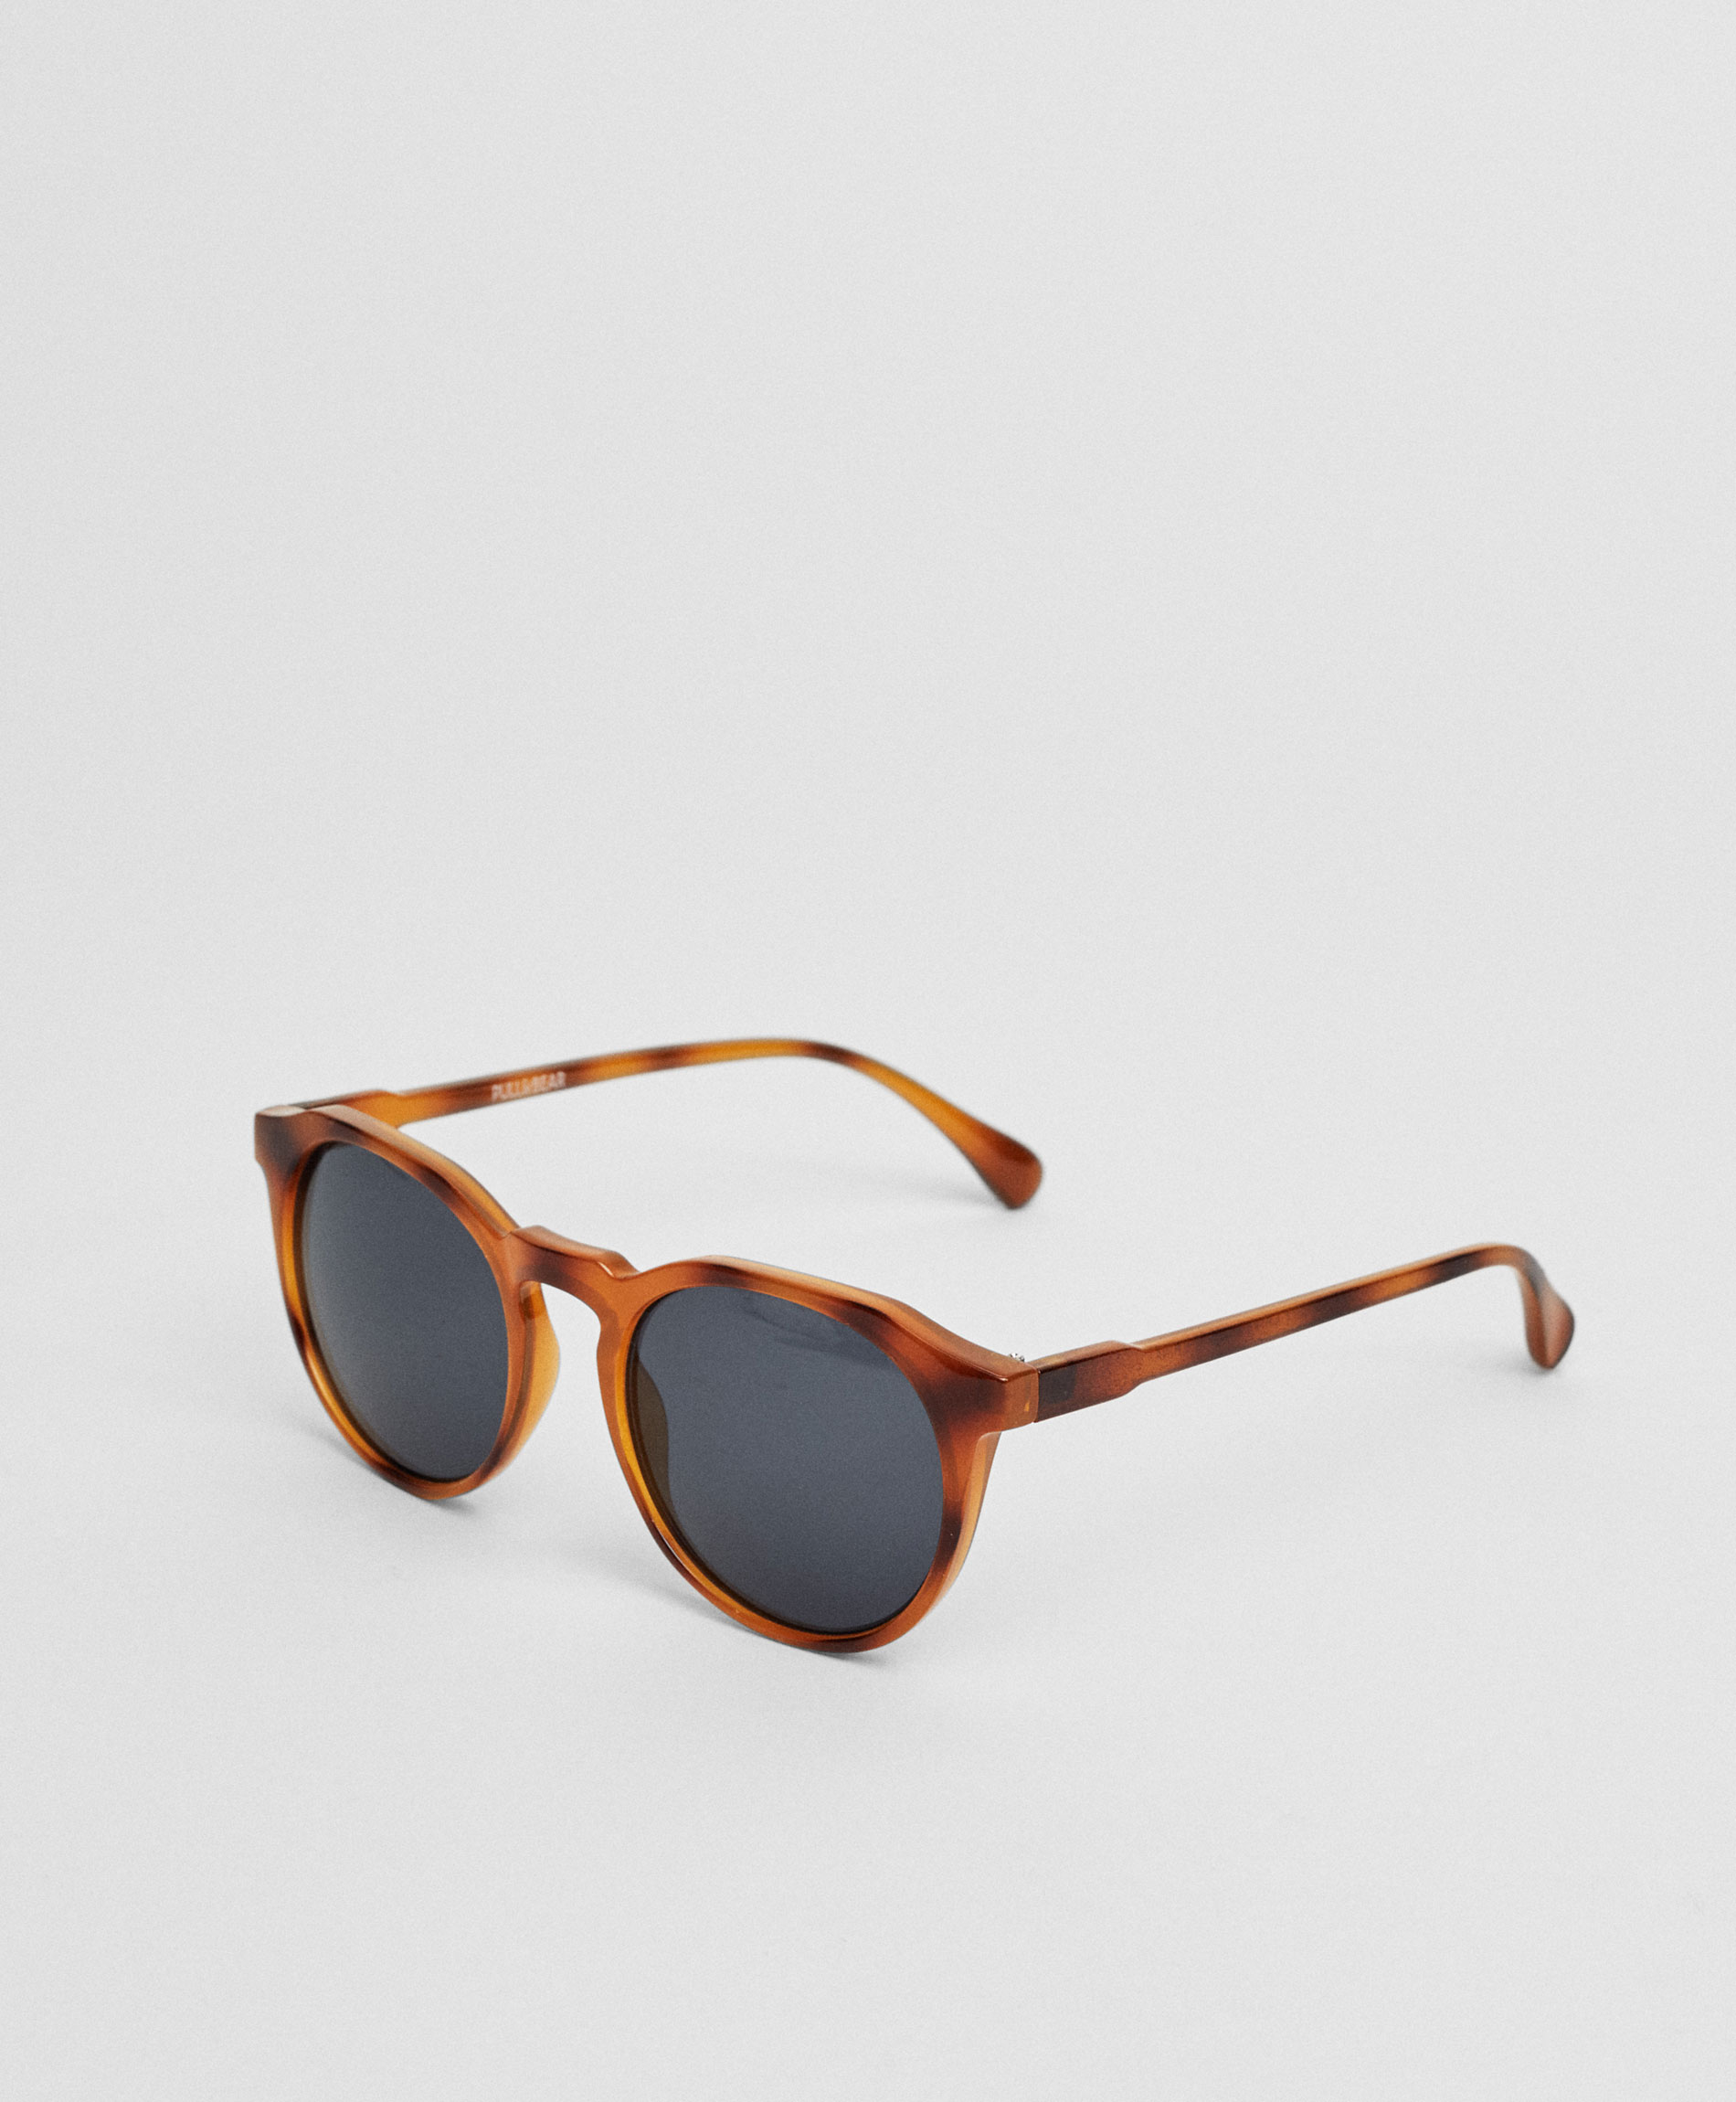 Round resin tortoiseshell sunglasses